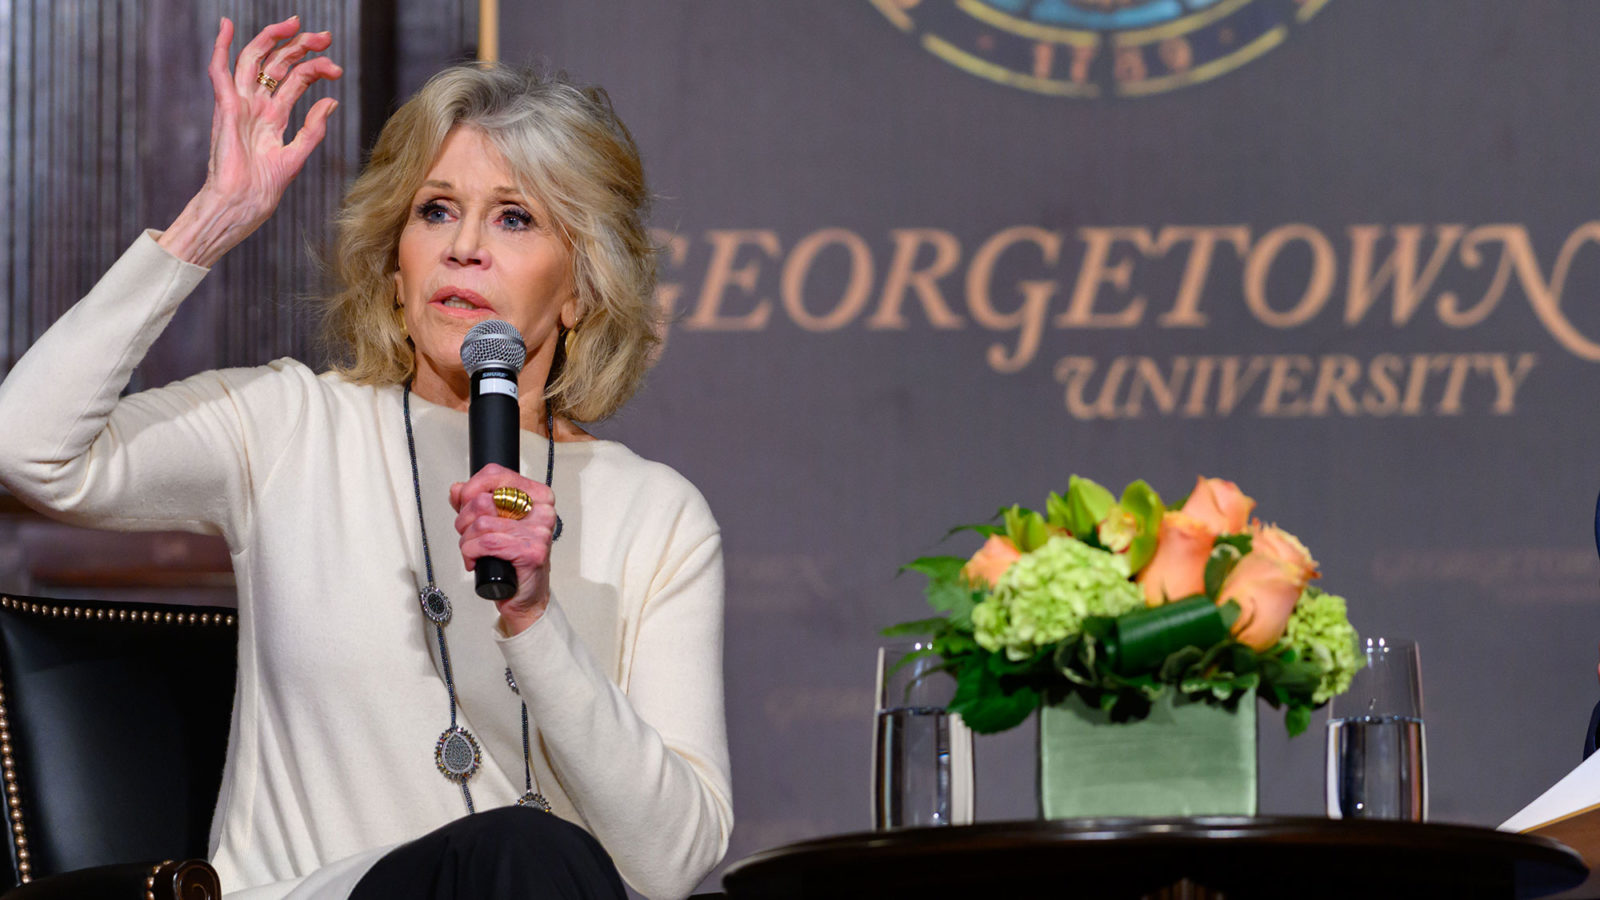 Jane Fonda raises her hand while sitting on stage.